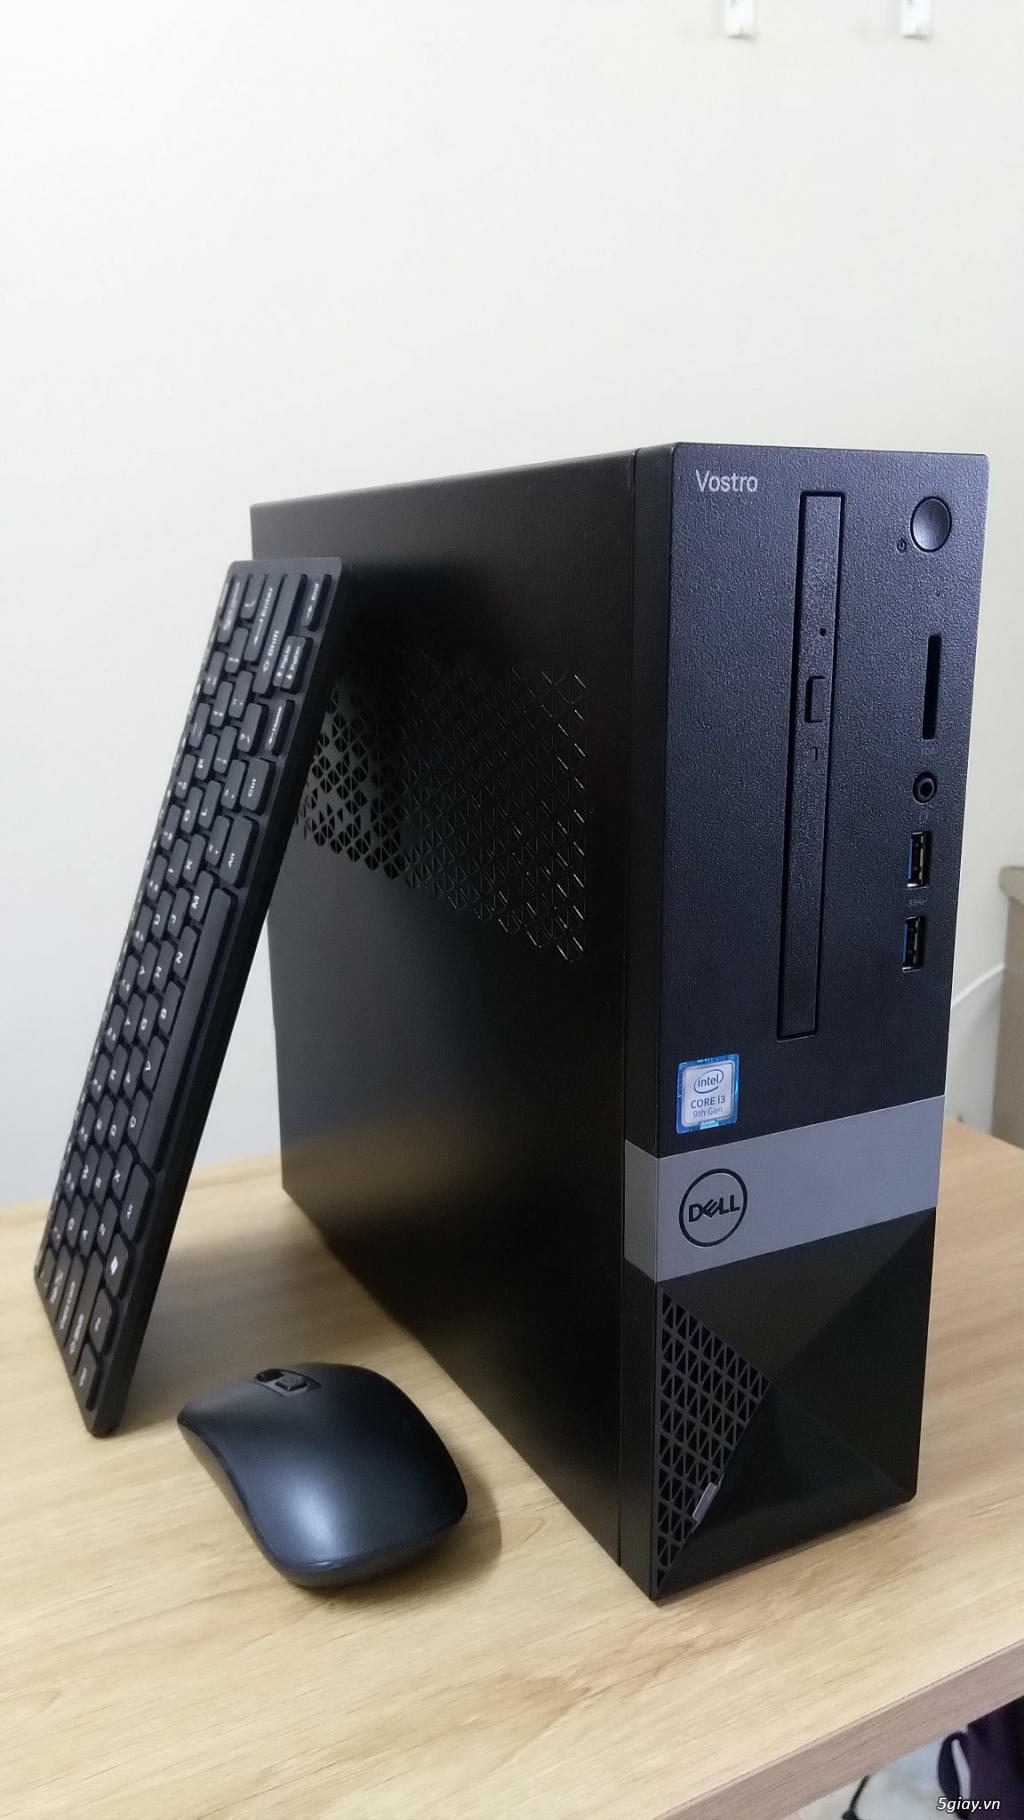 BT4.0 laptop Dell, Asus, music ediction | 5giay - 9